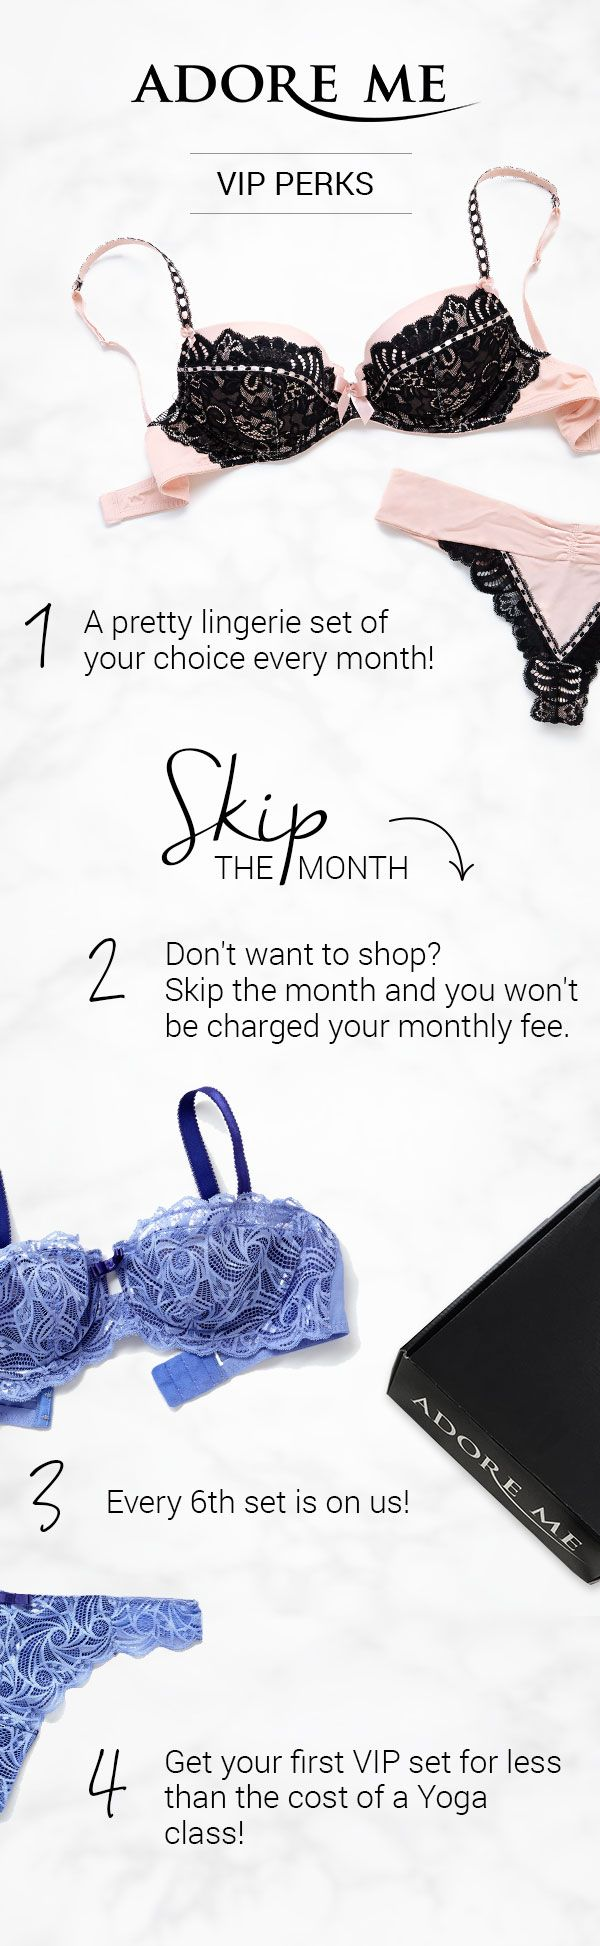 Love lingerie? Join Adore Me's VIP Membership and get your first bra and panty set for 50% off! Every month from there on out, you'll get to choose one set from our brand new monthly collections for up to 30% off (plus, every 6th set is on us!). And if you don't feel like shopping you can skip the month and you won't be charged your monthly membership. Sounds like a pretty sweet deal, right? It's a lacy little treat for yourself each month that doesn't break the bank <3 (Available in sizes…